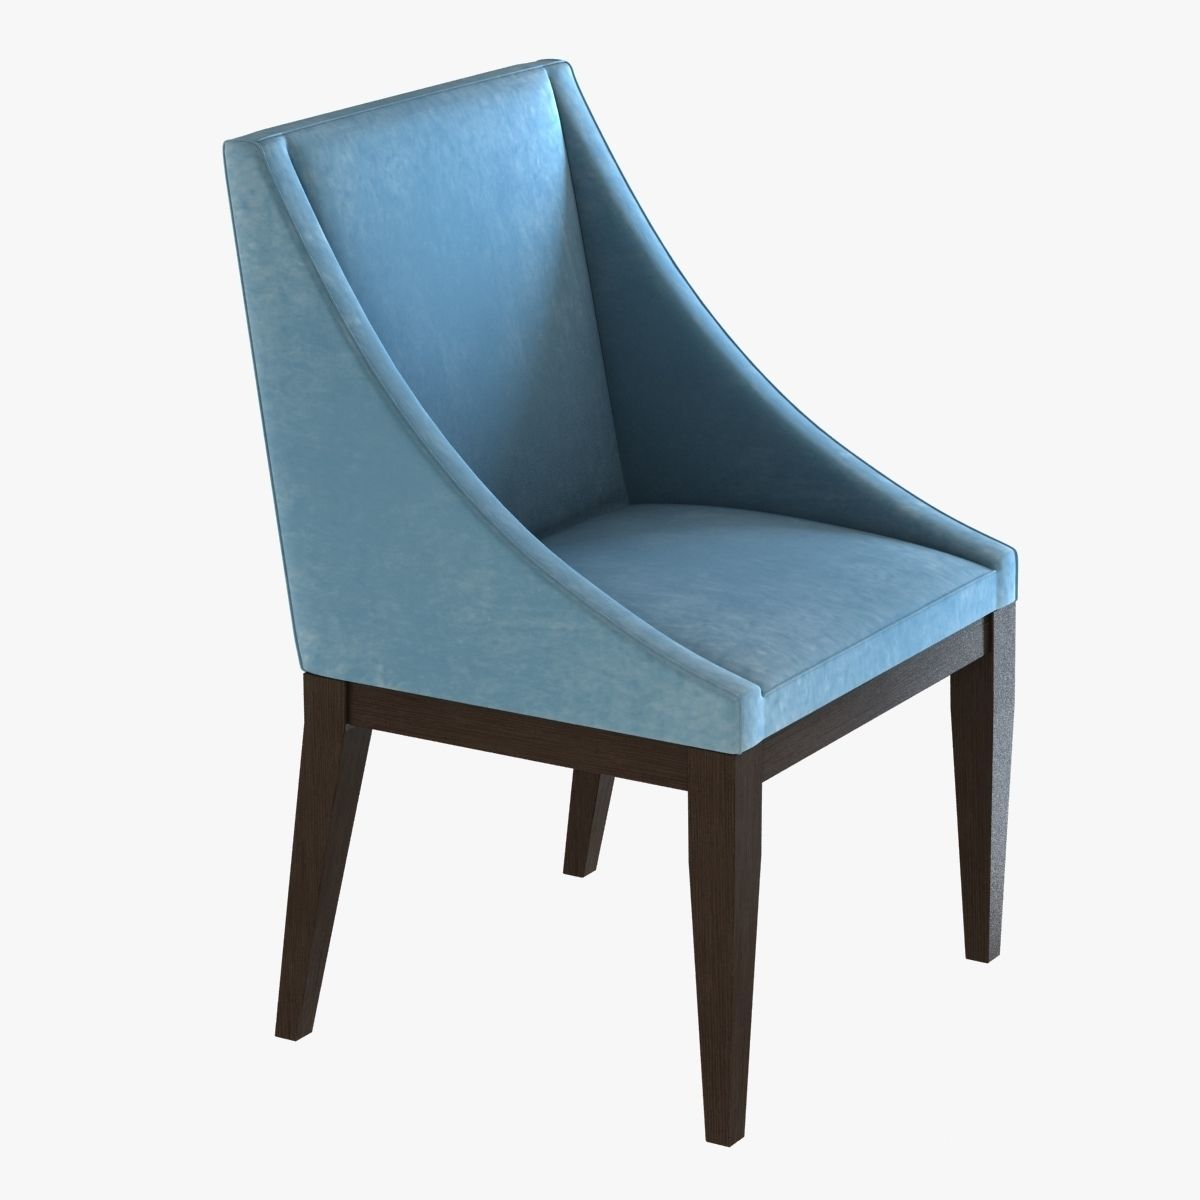 West Elm Curved Upholstered Chair 3d Model Max Obj 3ds Fbx Mtl 1 ...